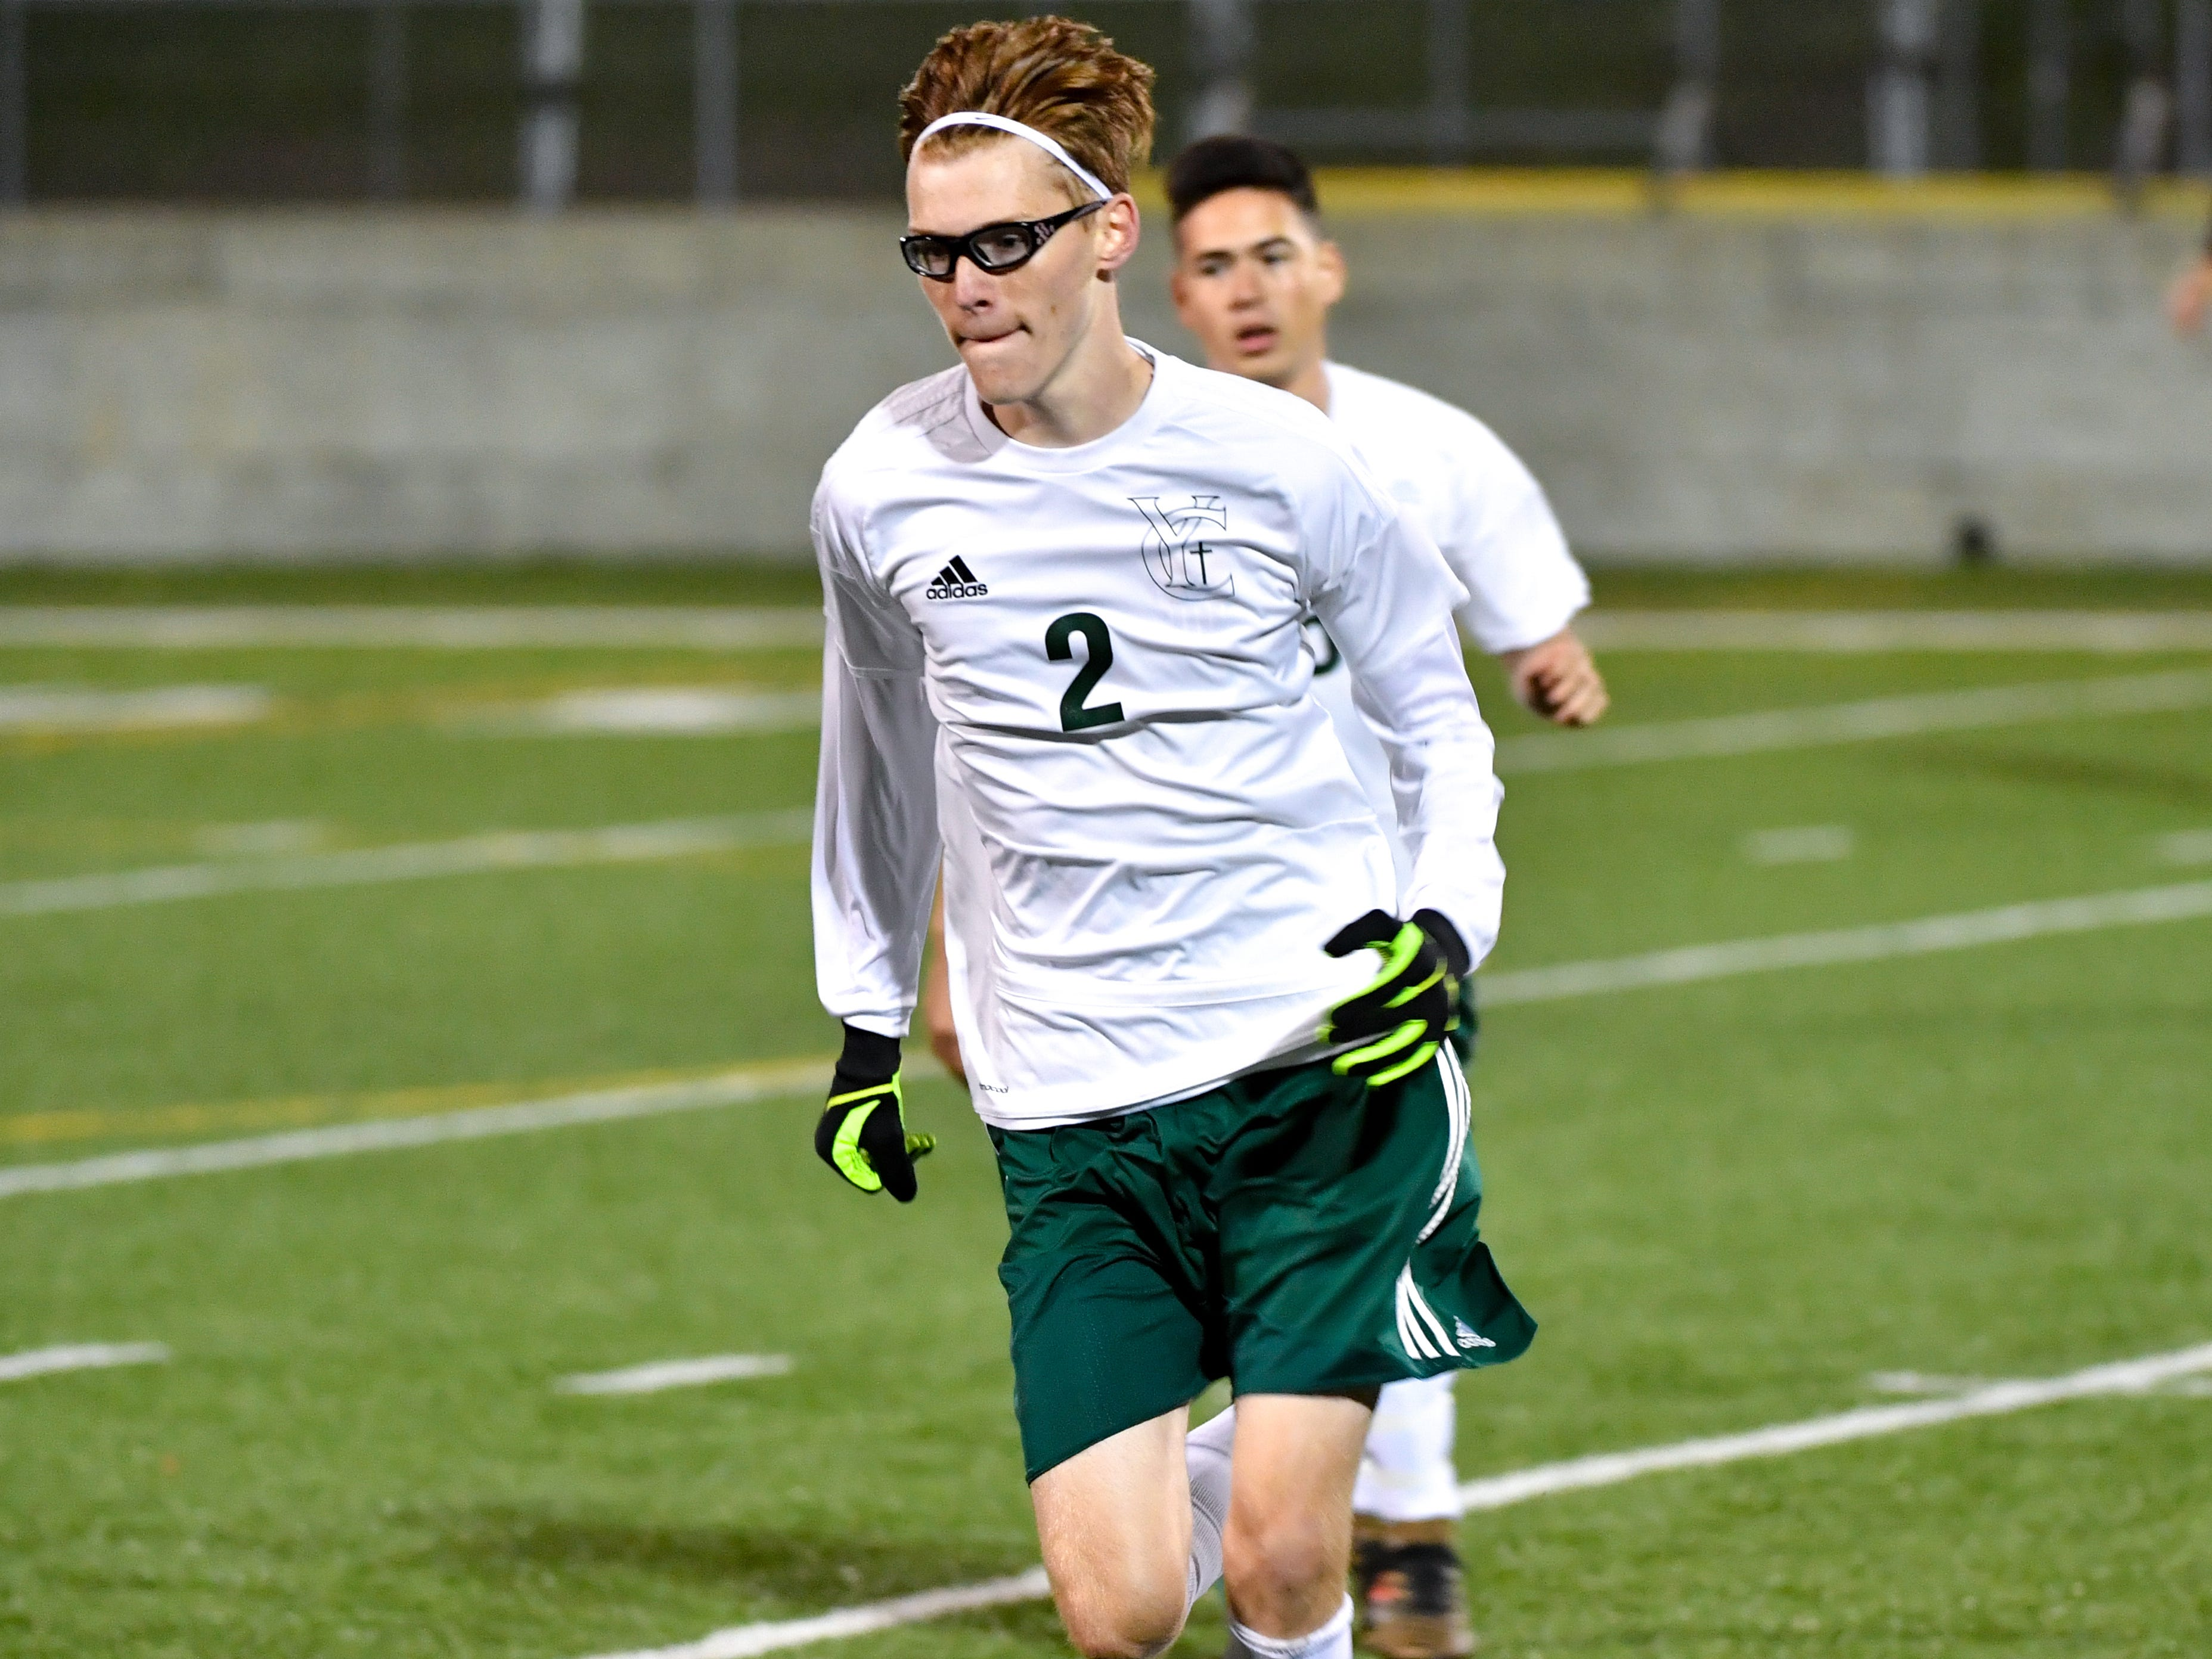 Phillip Jahn (2) runs the ball to the sideline during the boys soccer game between South Western and York Catholic, October 16, 2018. The Mustangs beat the Irish 2-1.